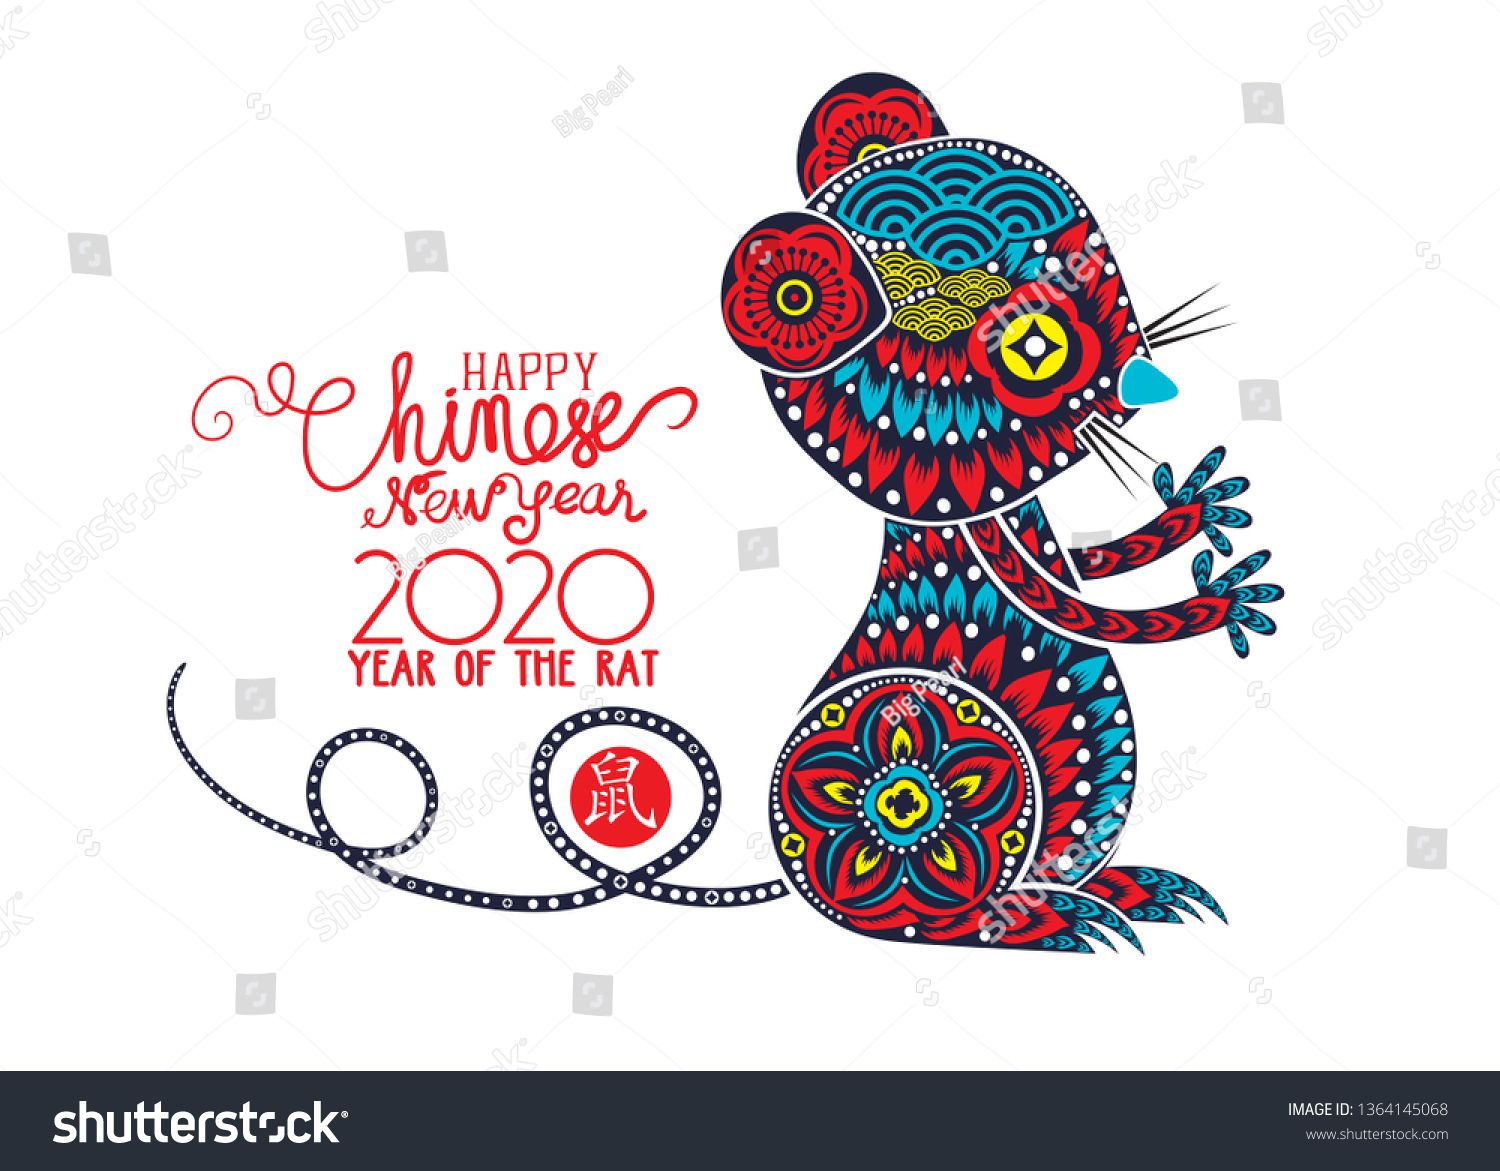 Pin On Chinese New Year Year Of The Rat